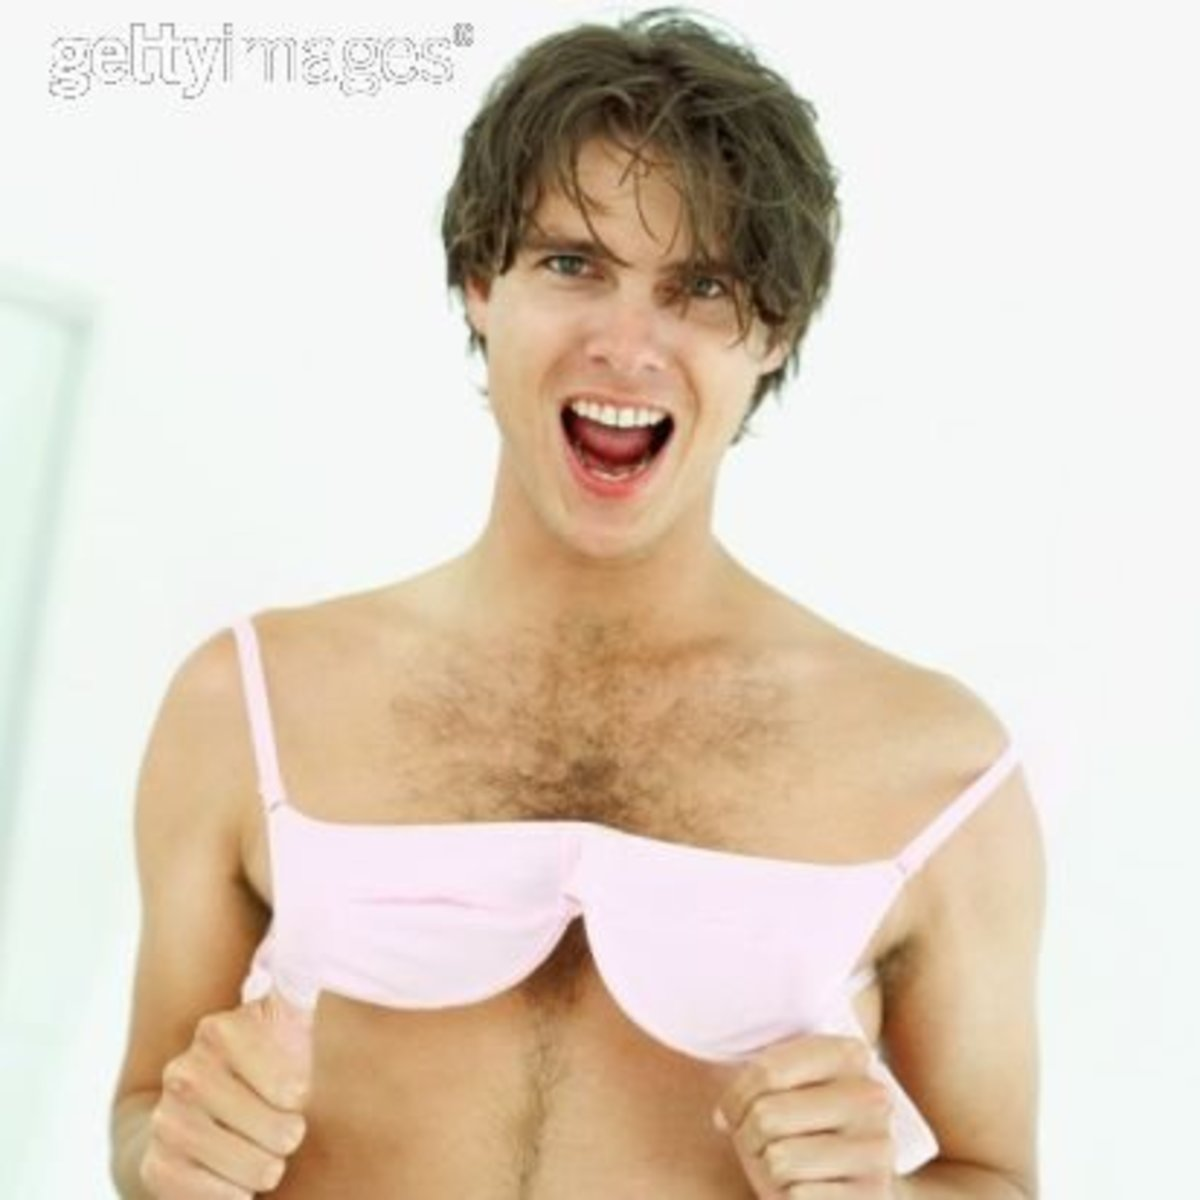 I got this from Getty Images. That's how mainstream men wearing bras is becoming.